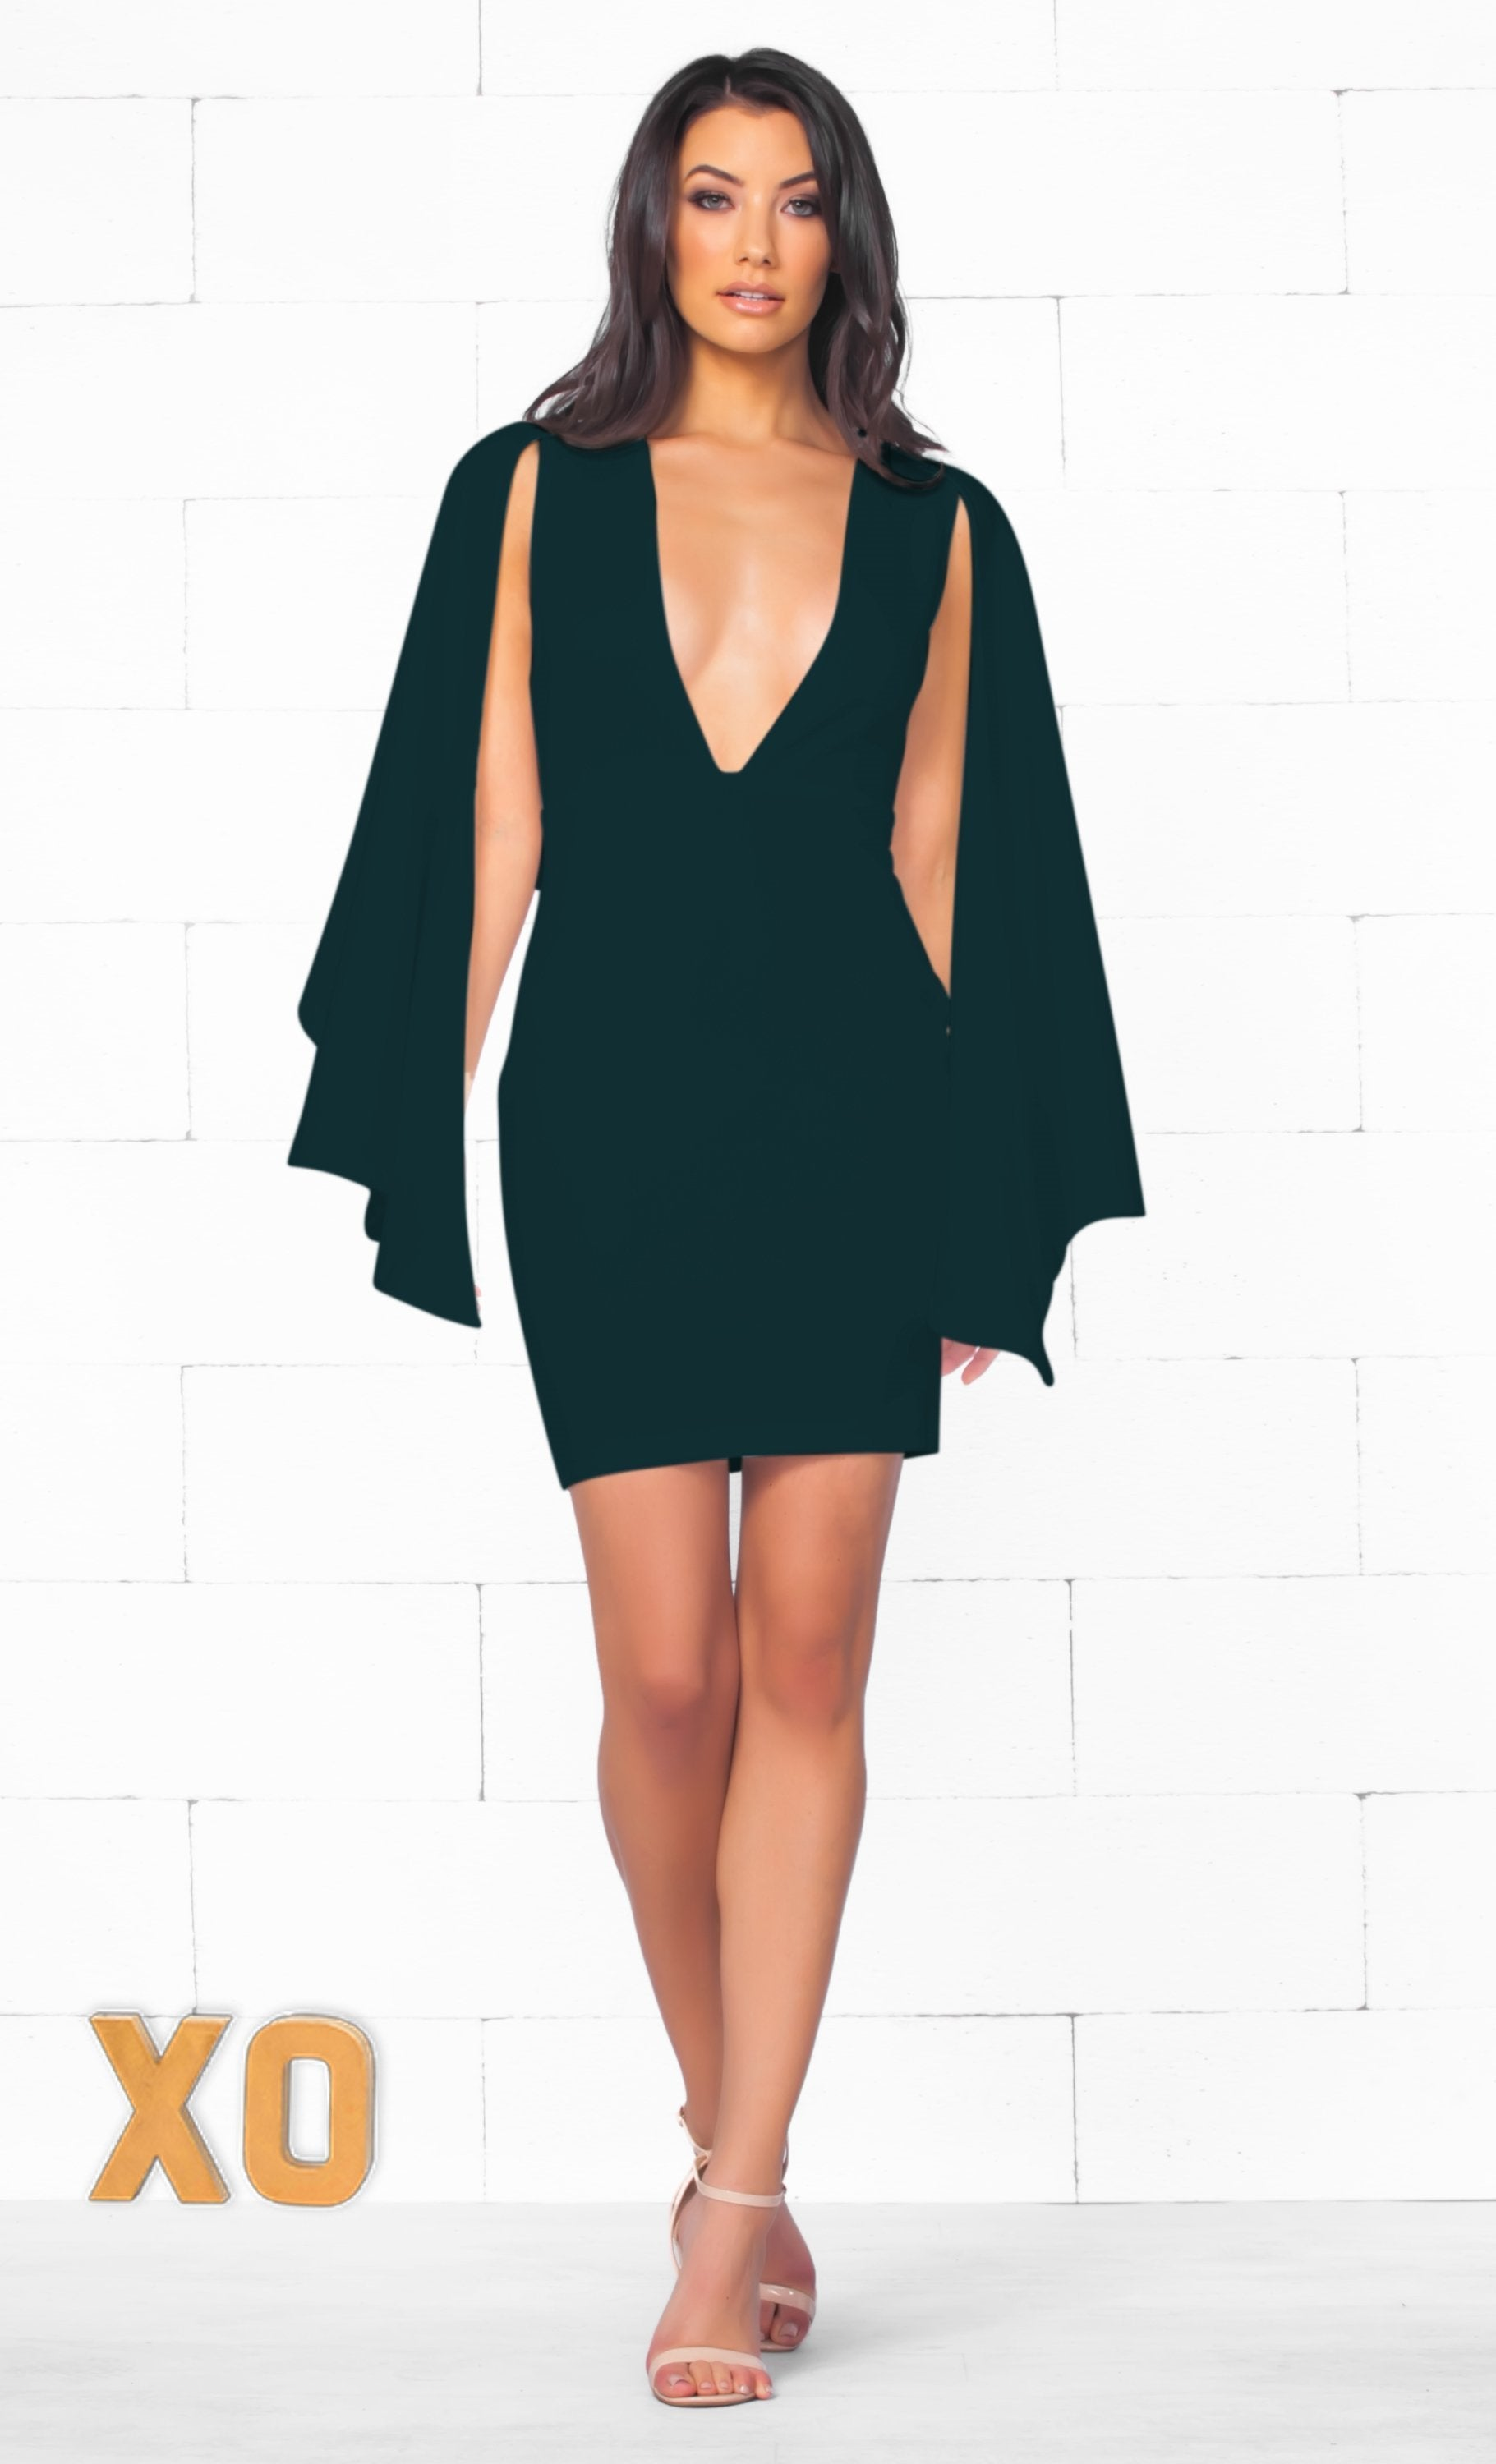 Indie XO Simply Irresistible Forest Dark Green Long Split Sleeve Deep V Neck Bodycon Cape Mini Dress - Just Ours - Sold Out